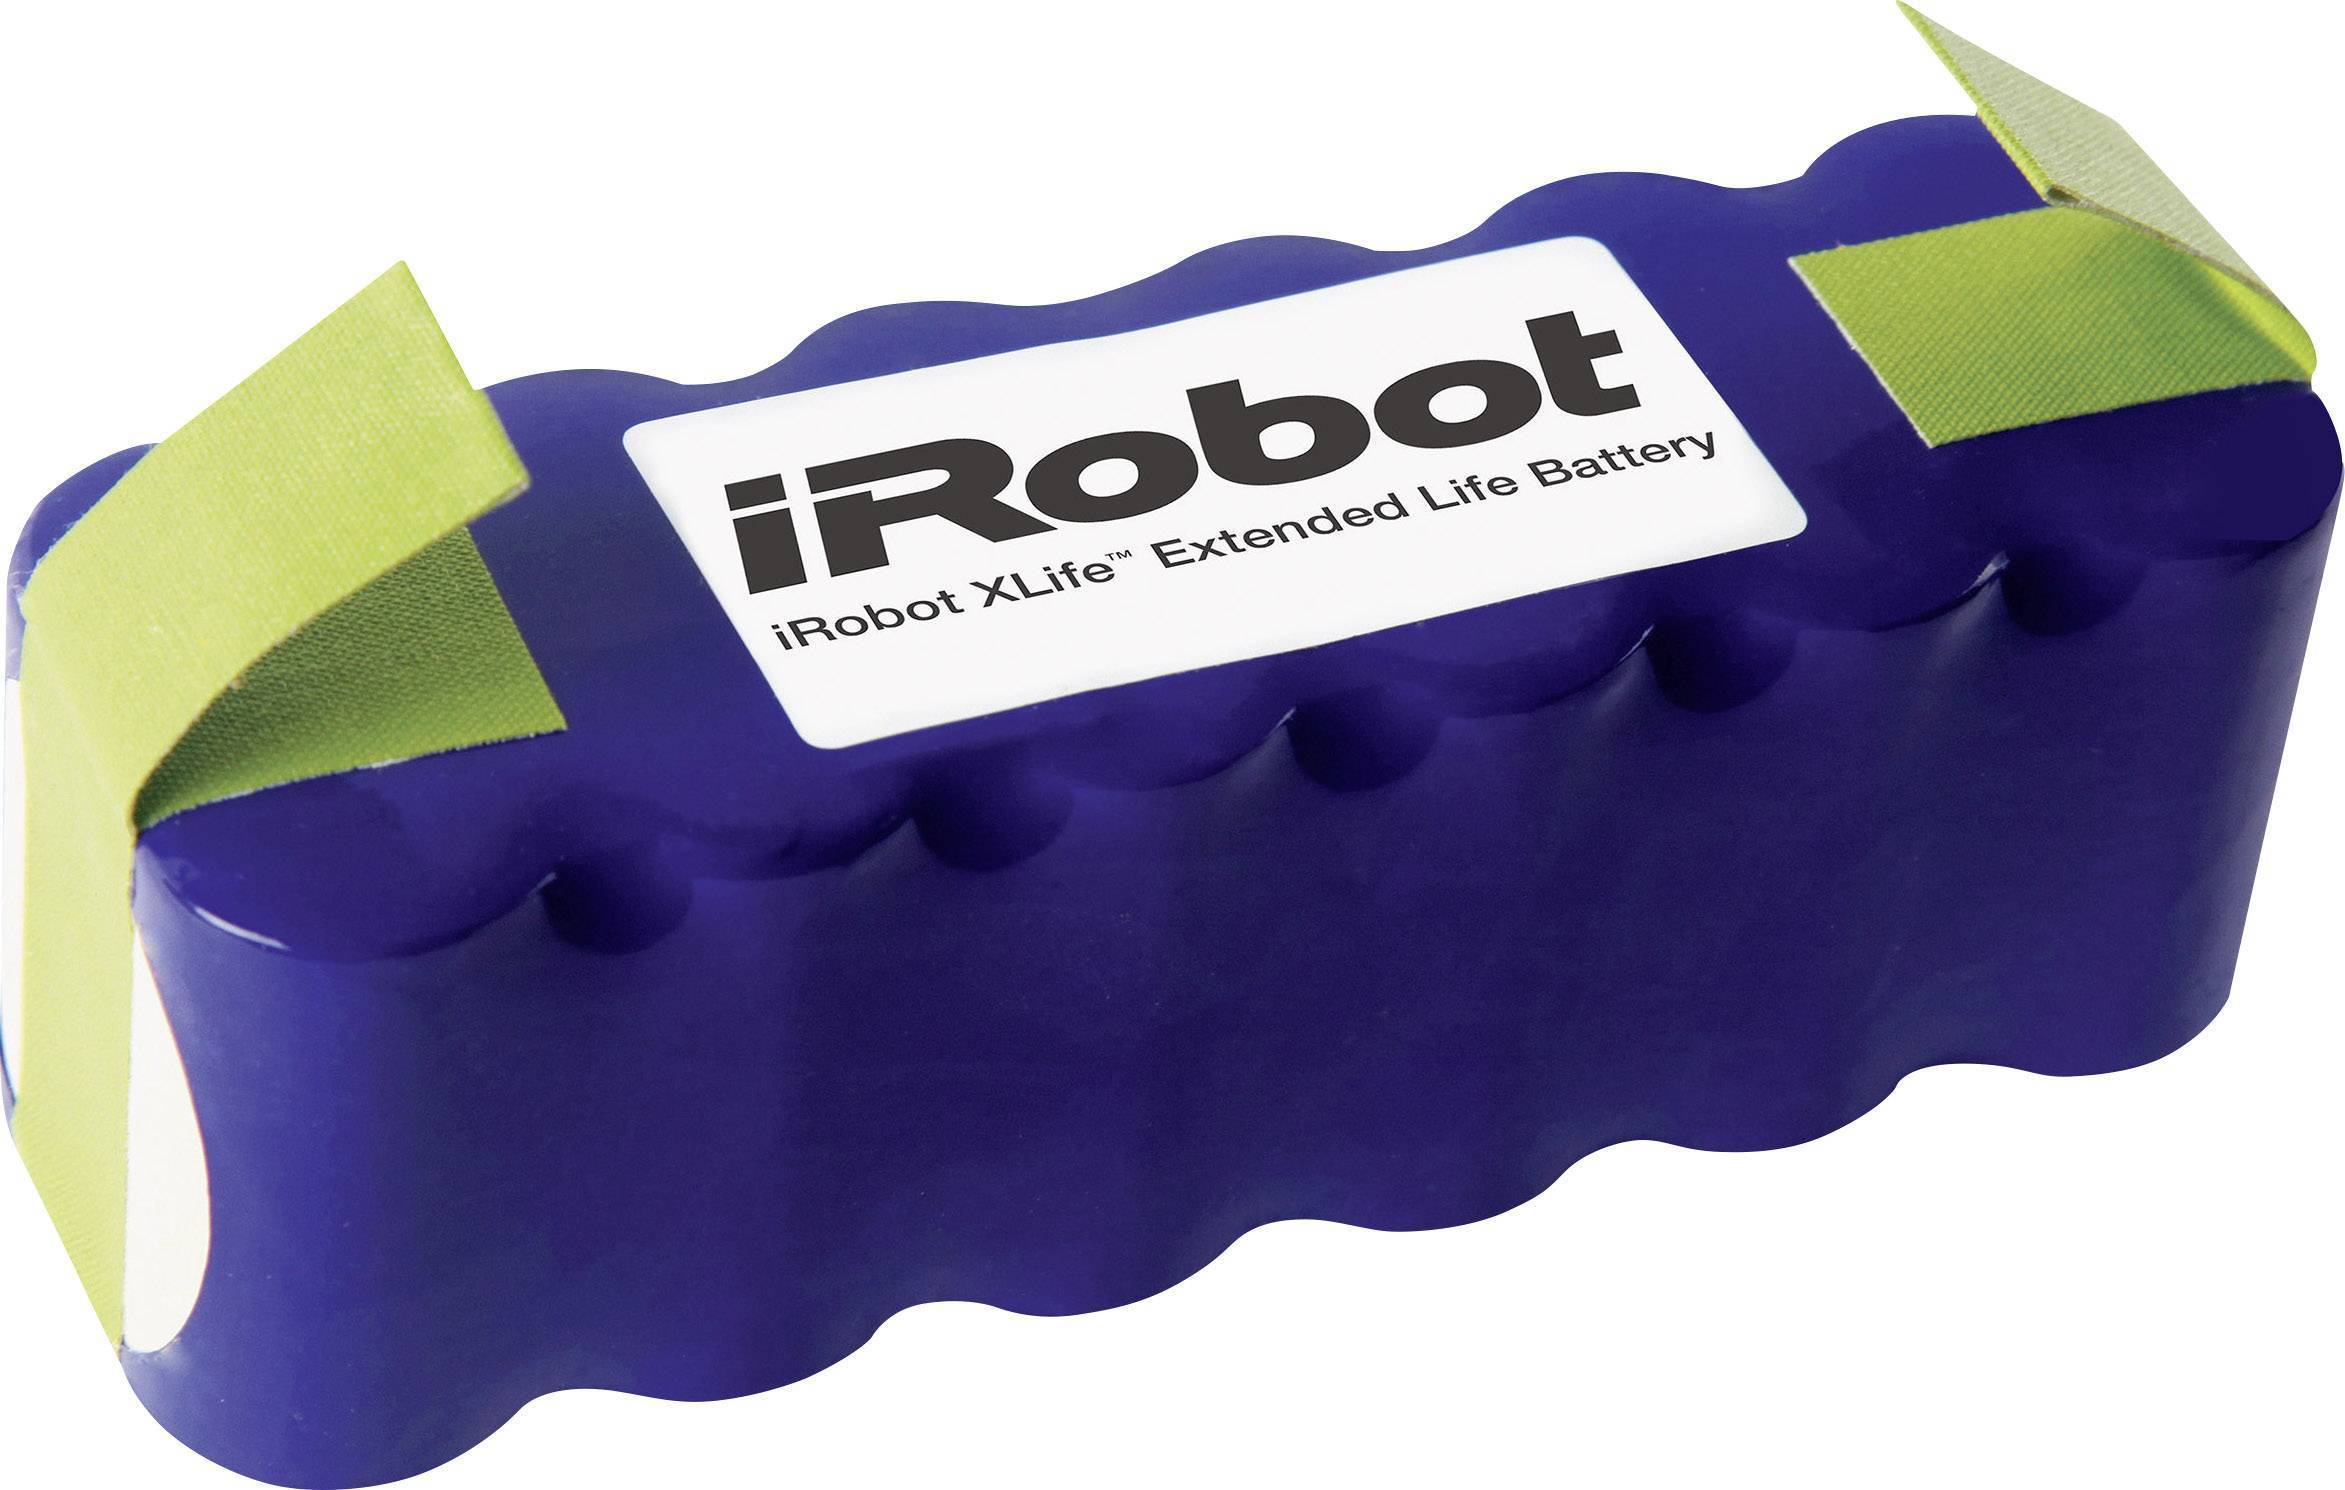 Authentic iRobot Parts